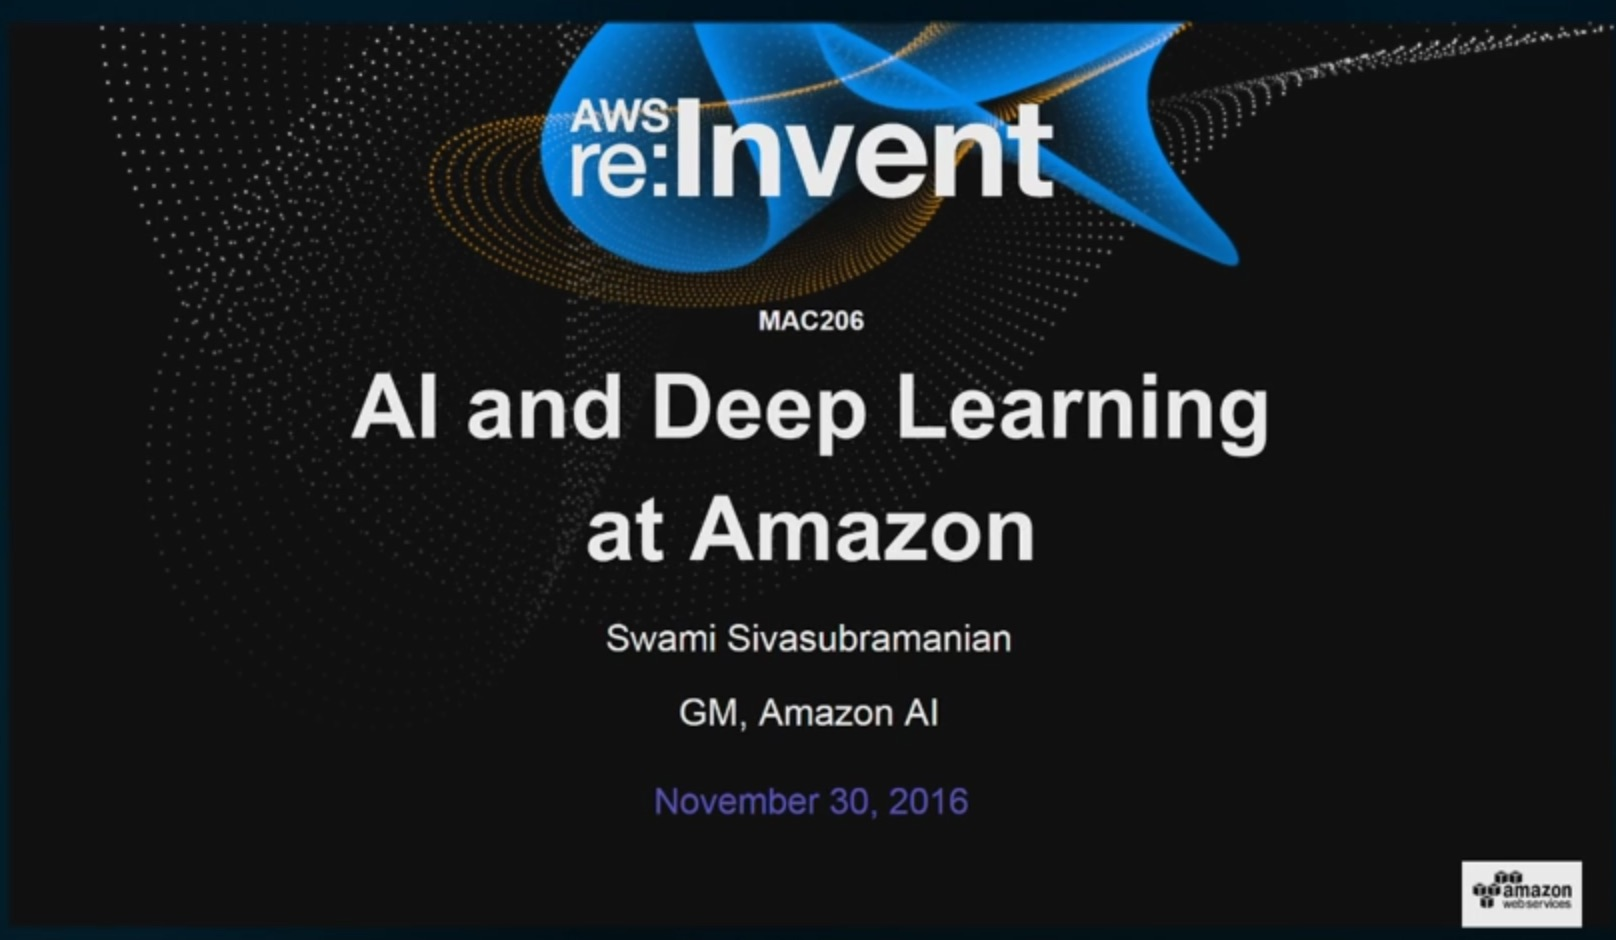 AI and Deep Learning at Amazon